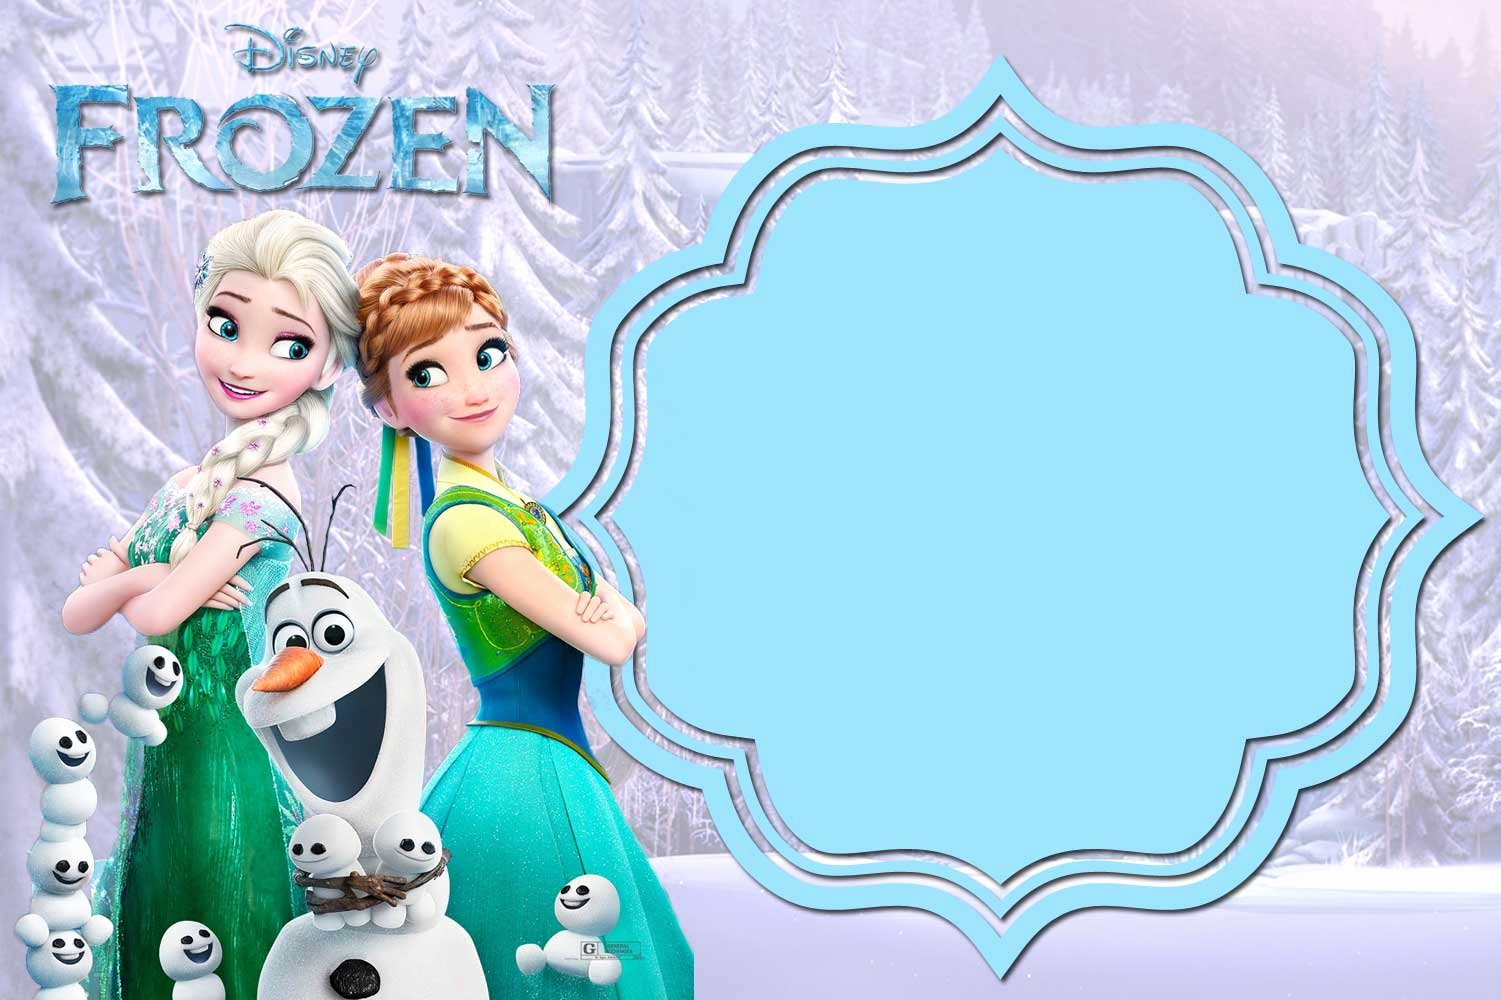 Frozen Invitation Template Free Awesome Free Printable Frozen Anna and Elsa Invitation Templates